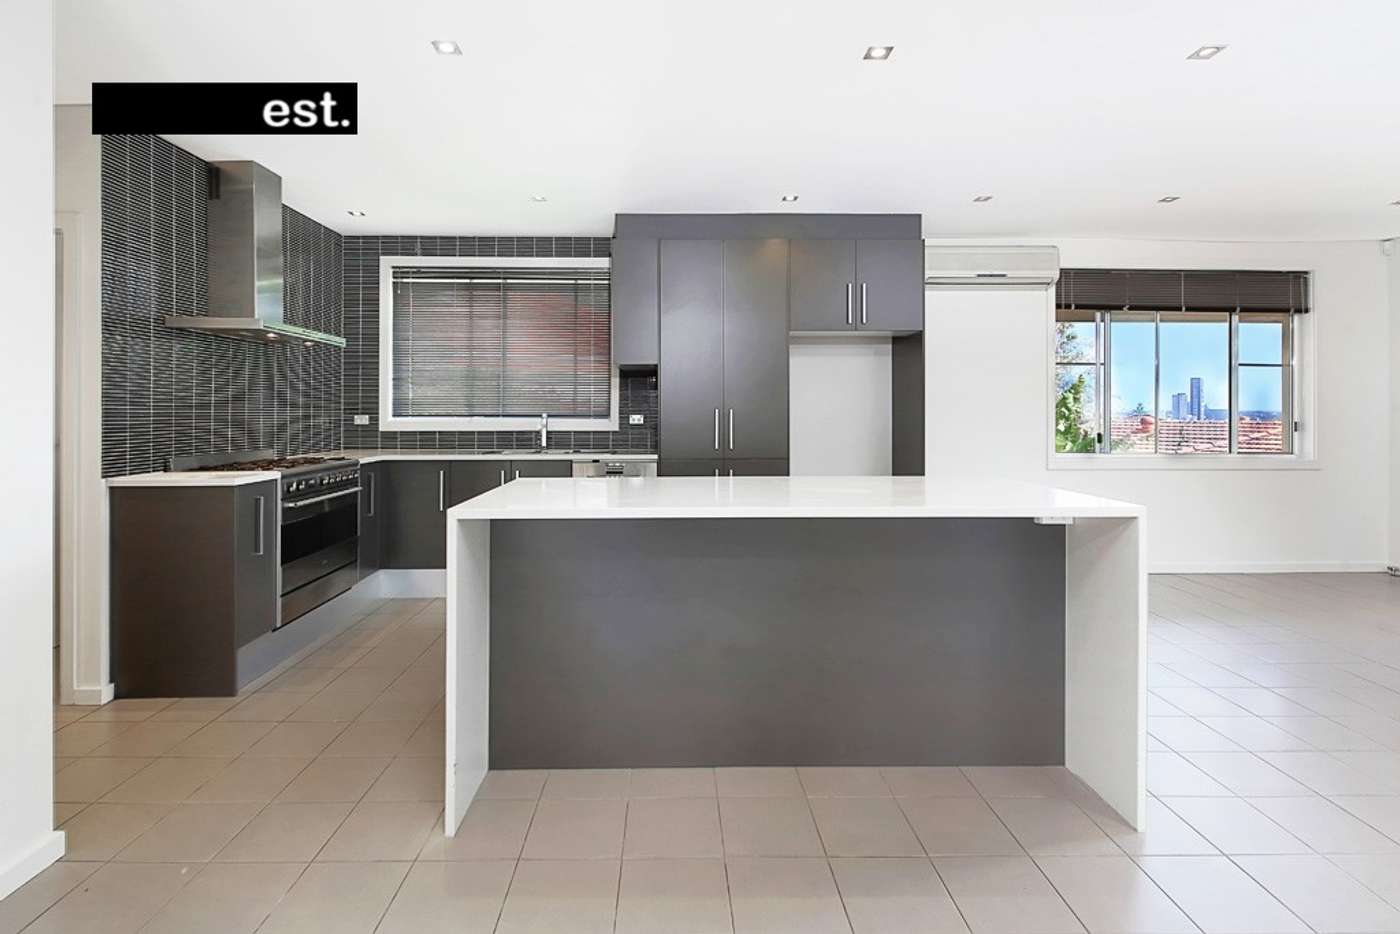 Main view of Homely house listing, 6 Oatlands Crescent, Oatlands NSW 2117